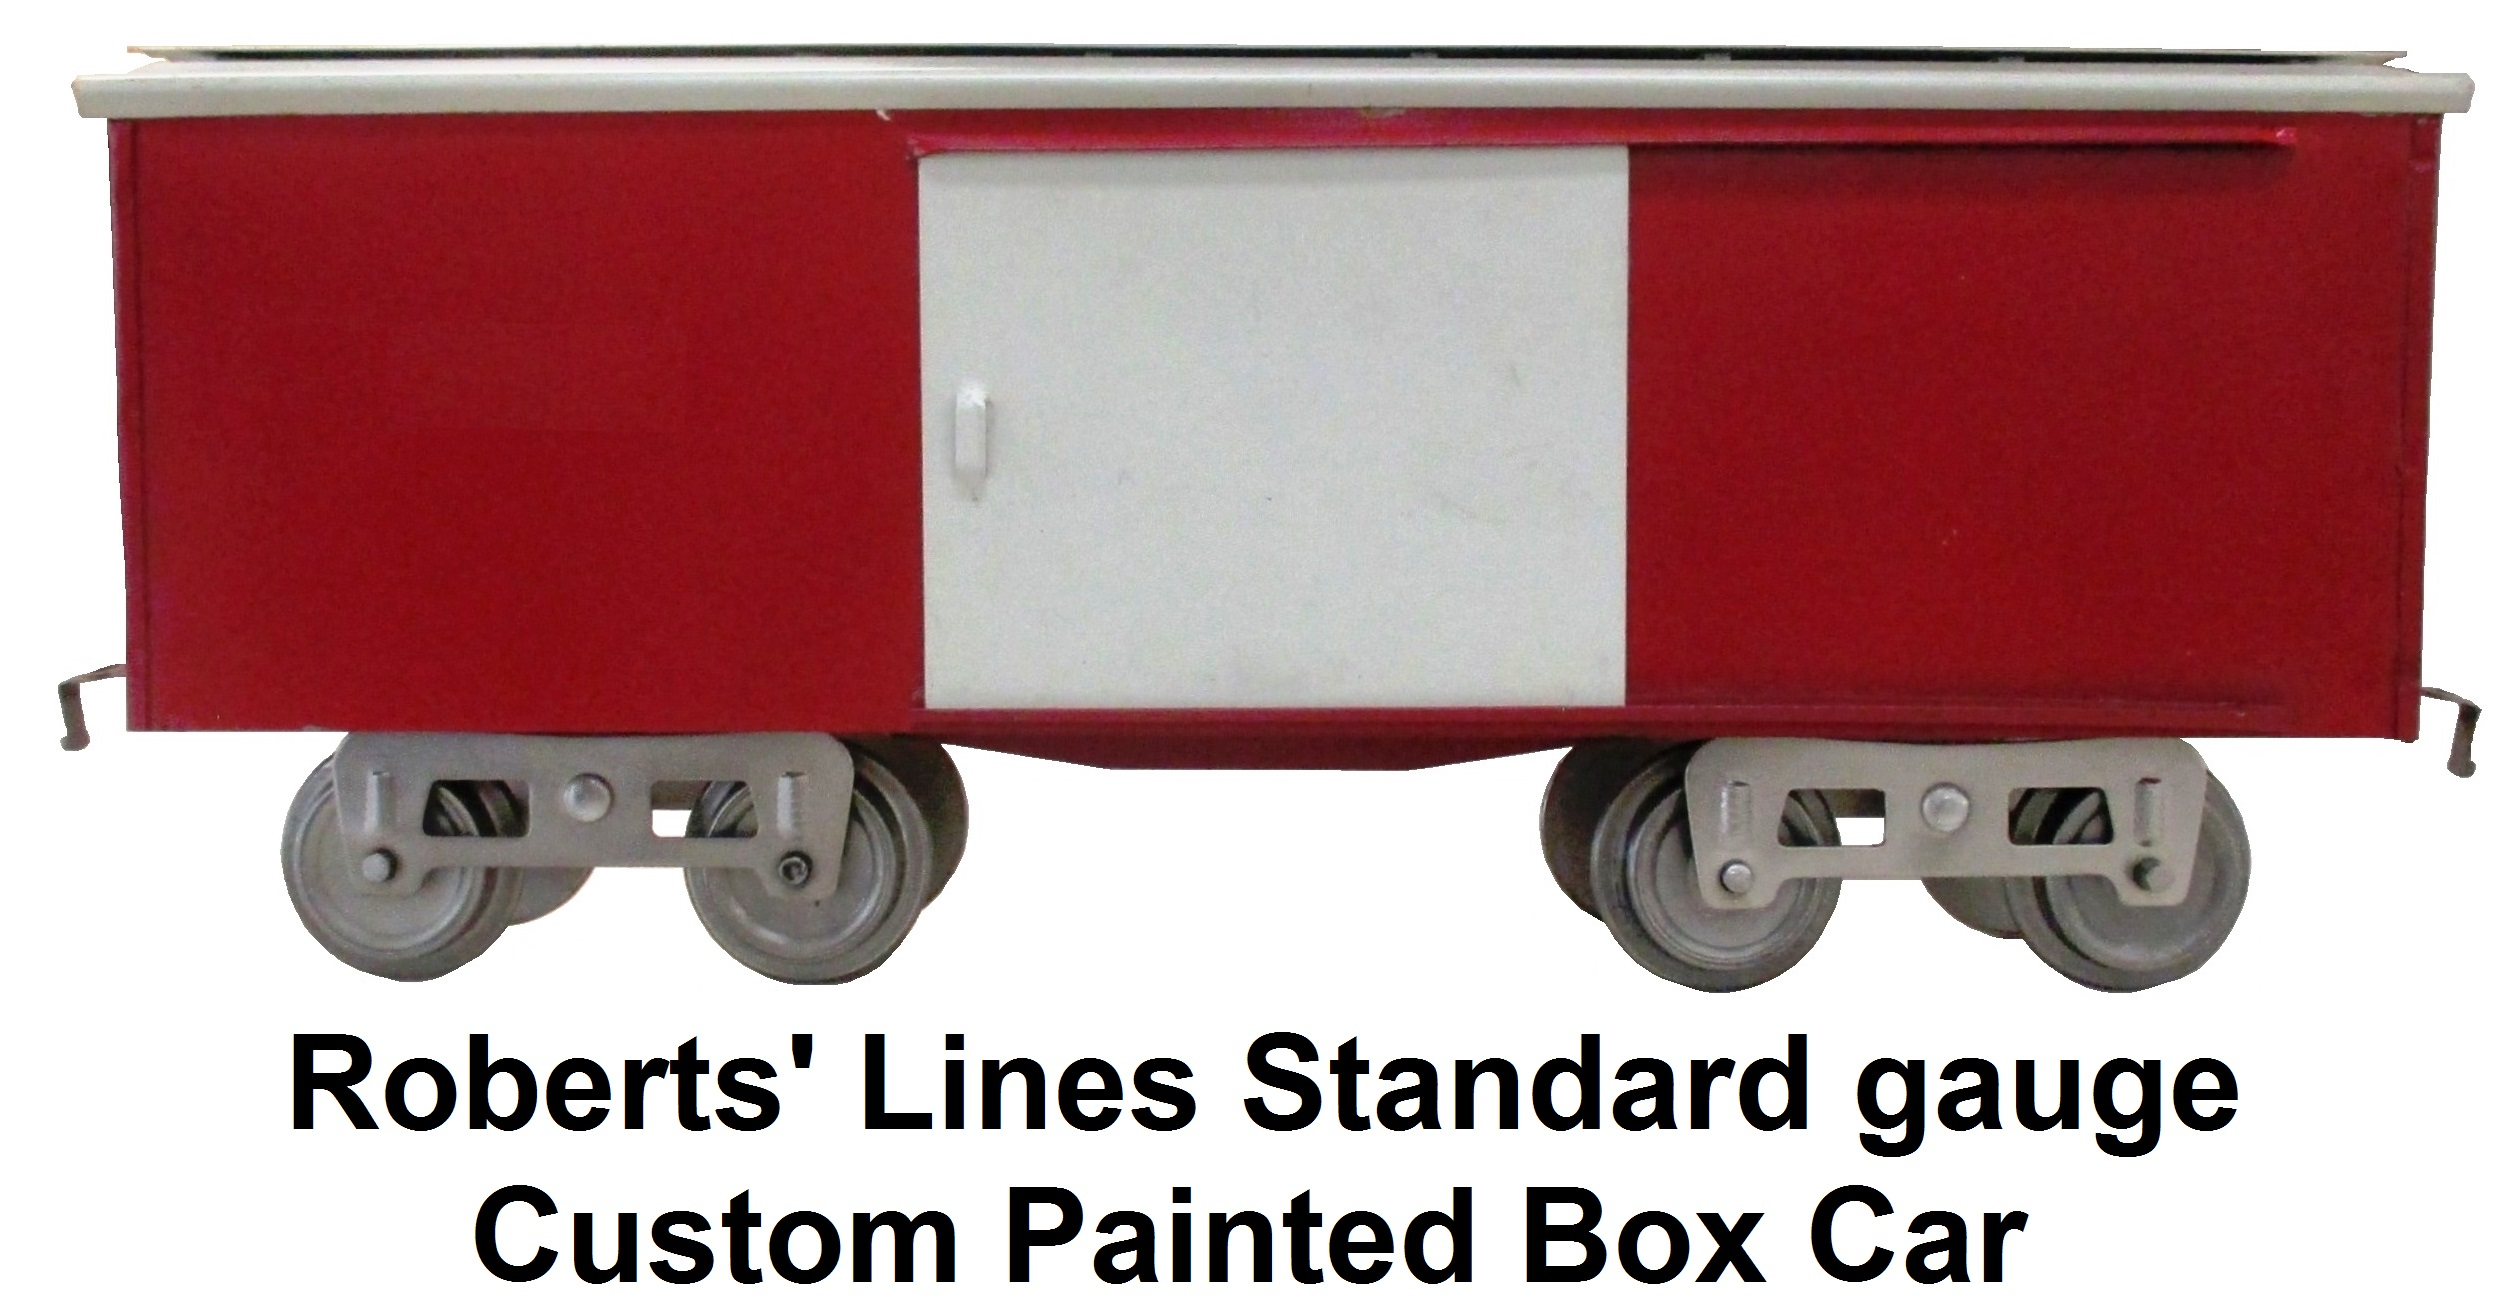 Roberts' Lines Standard gauge custom painted box car